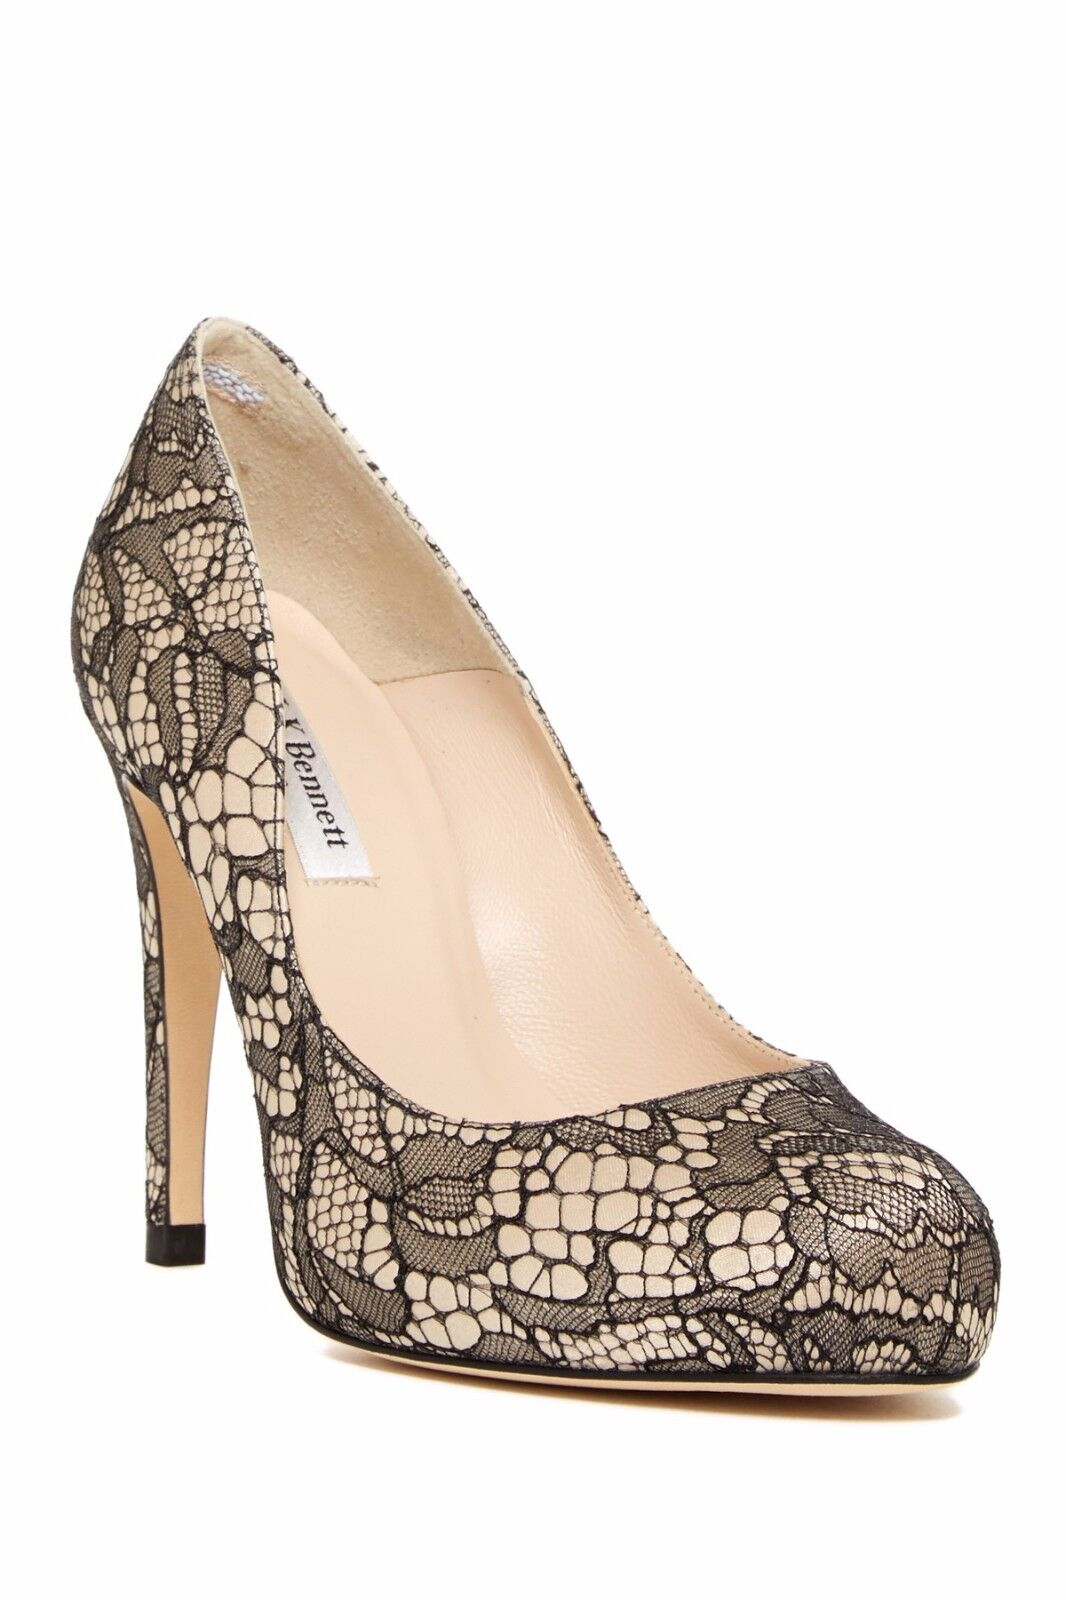 375 L.k. Bennett  Pump Harley Black Lace shoes Heel 41-10 Hidden Platform